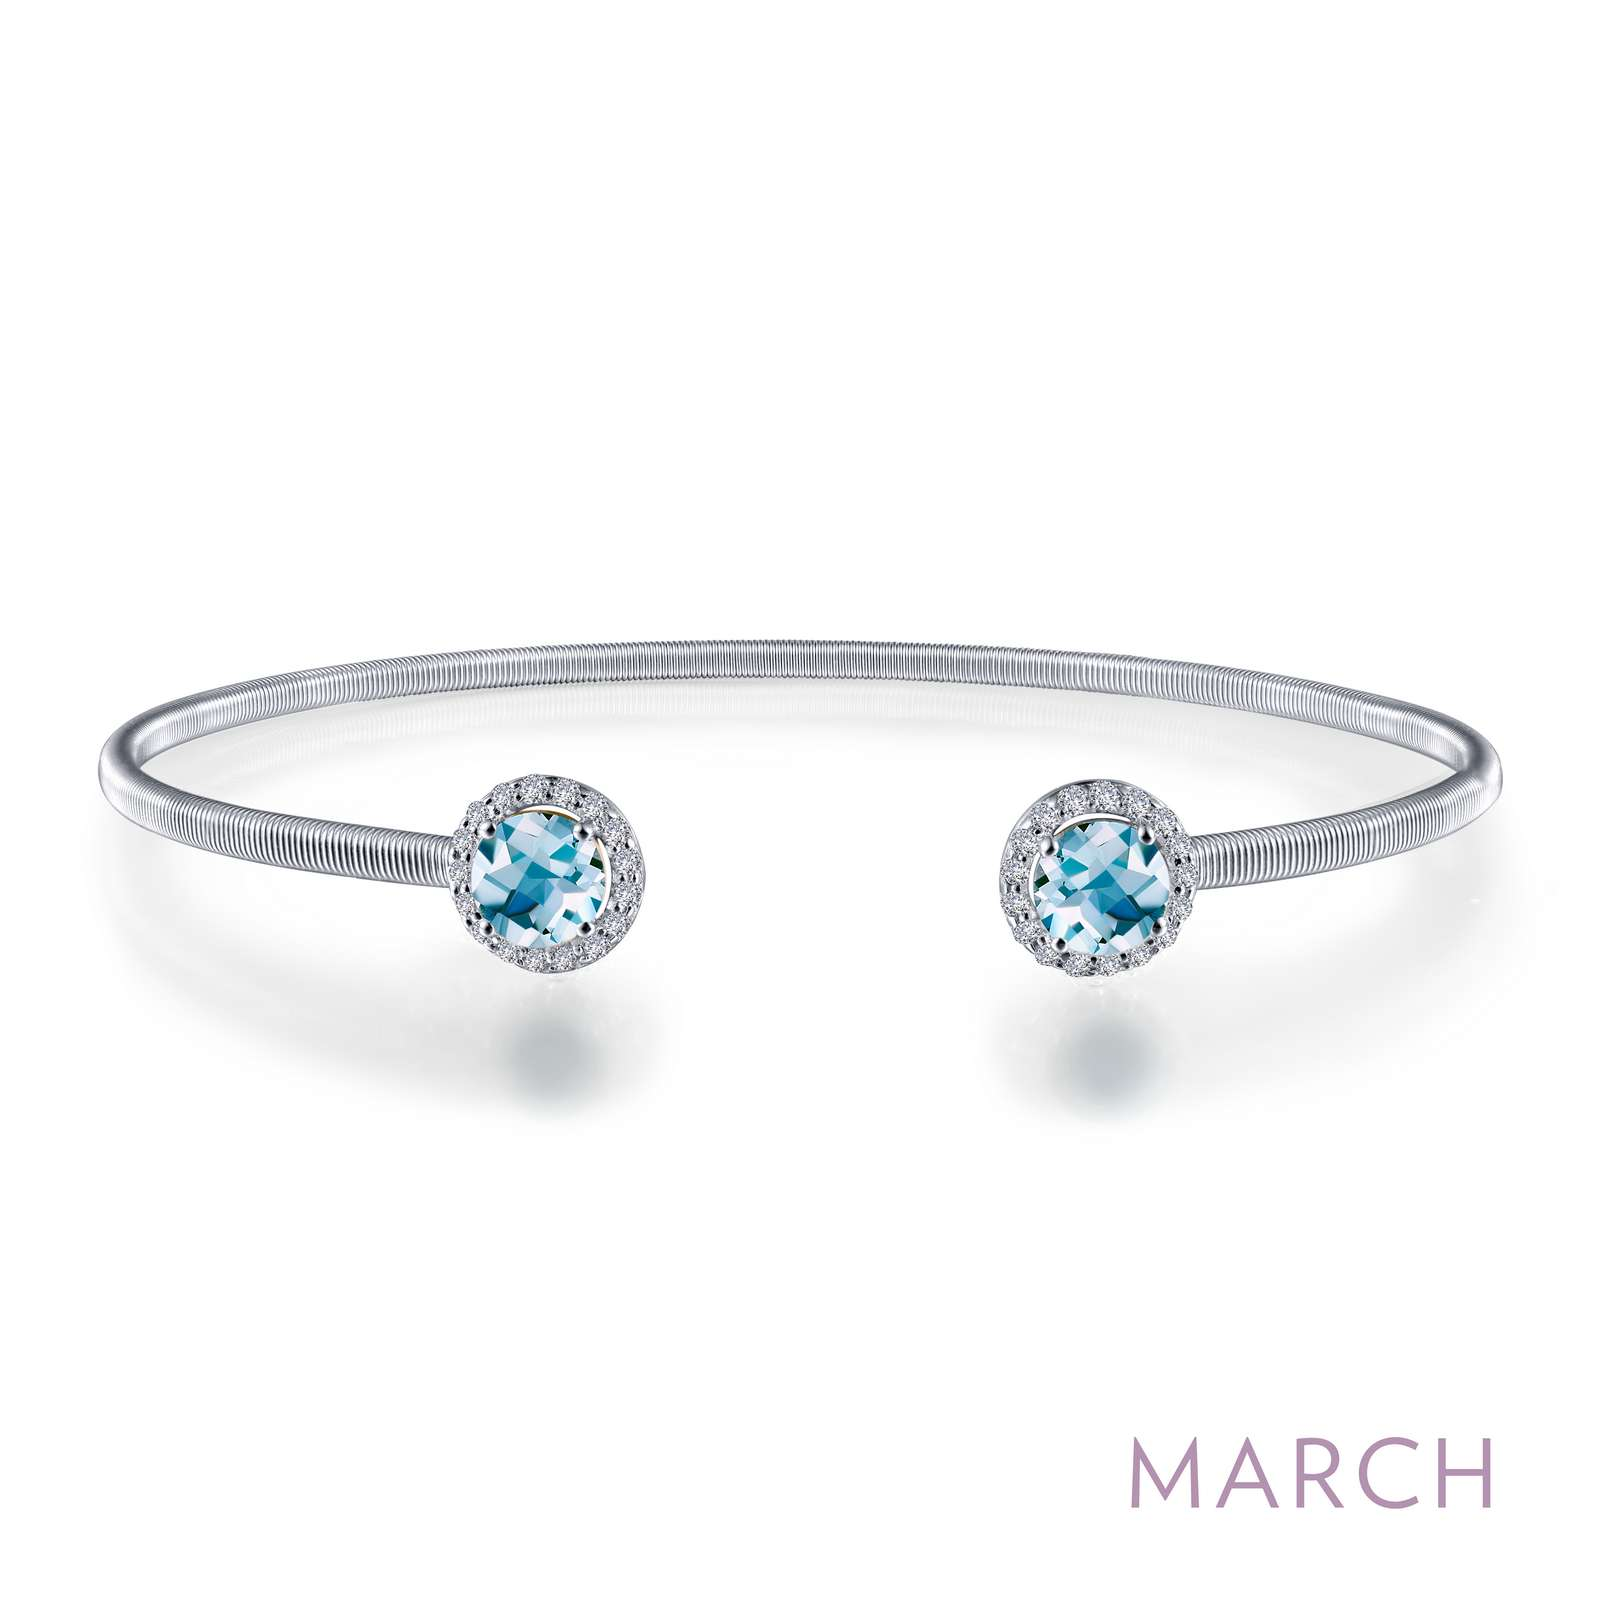 March - Aquamarine. Adorn yourself with Lafonn's birthstone jewelry. This flexible stackable open cuff halo bangle bracelet is set with Lafonn's signature Lassaire simulated diamonds and simulated aquamarines. Bracelet is in sterling silver bonded with platinum.